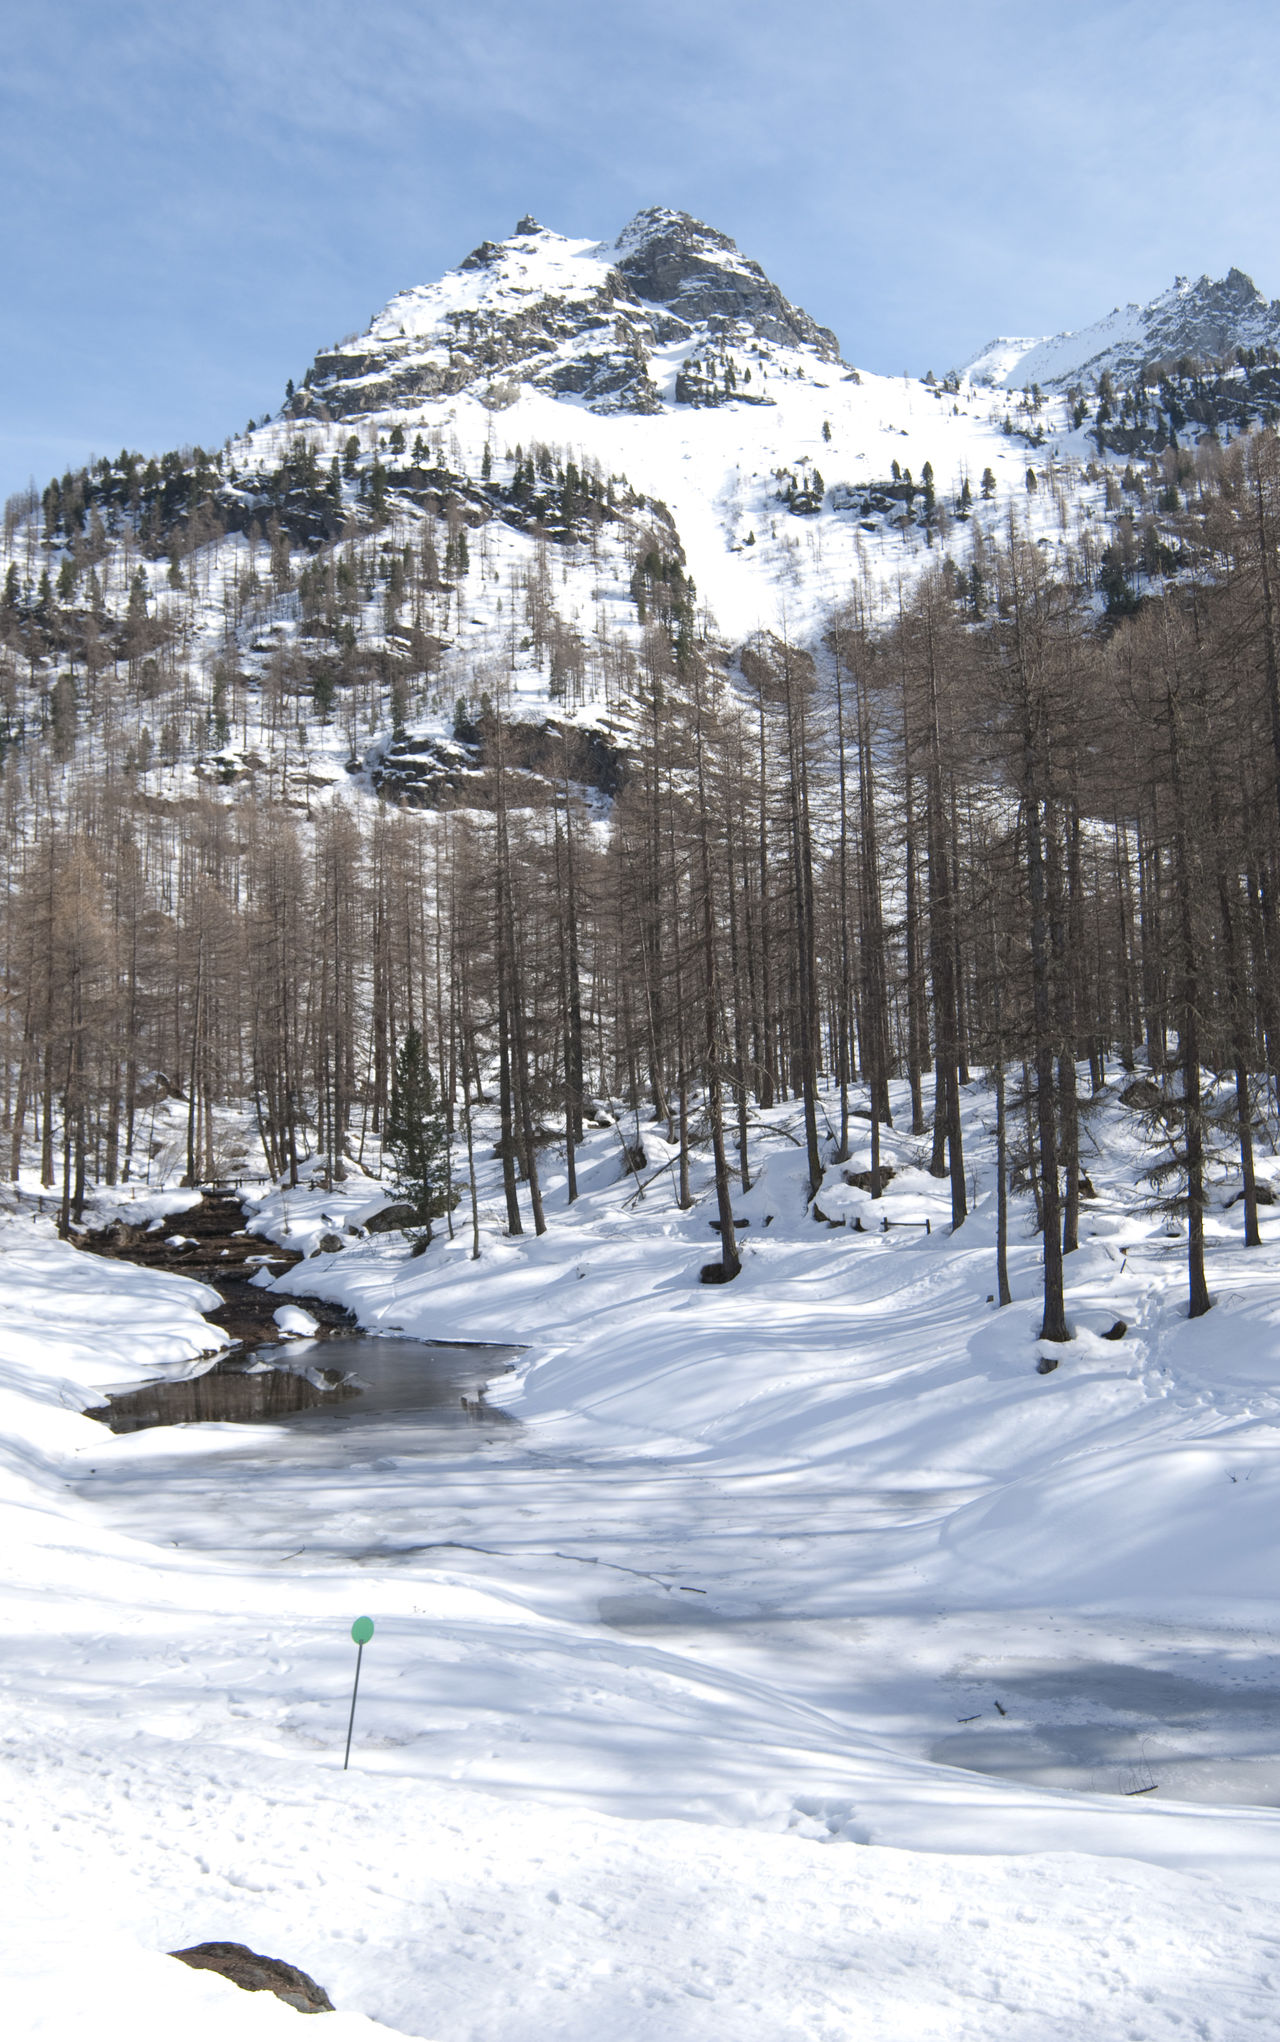 Aosta Aosta Valley Beauty In Nature Cold Temperature Mountain Outdoors Pine Woodland Snow Snowcapped Mountain Winter